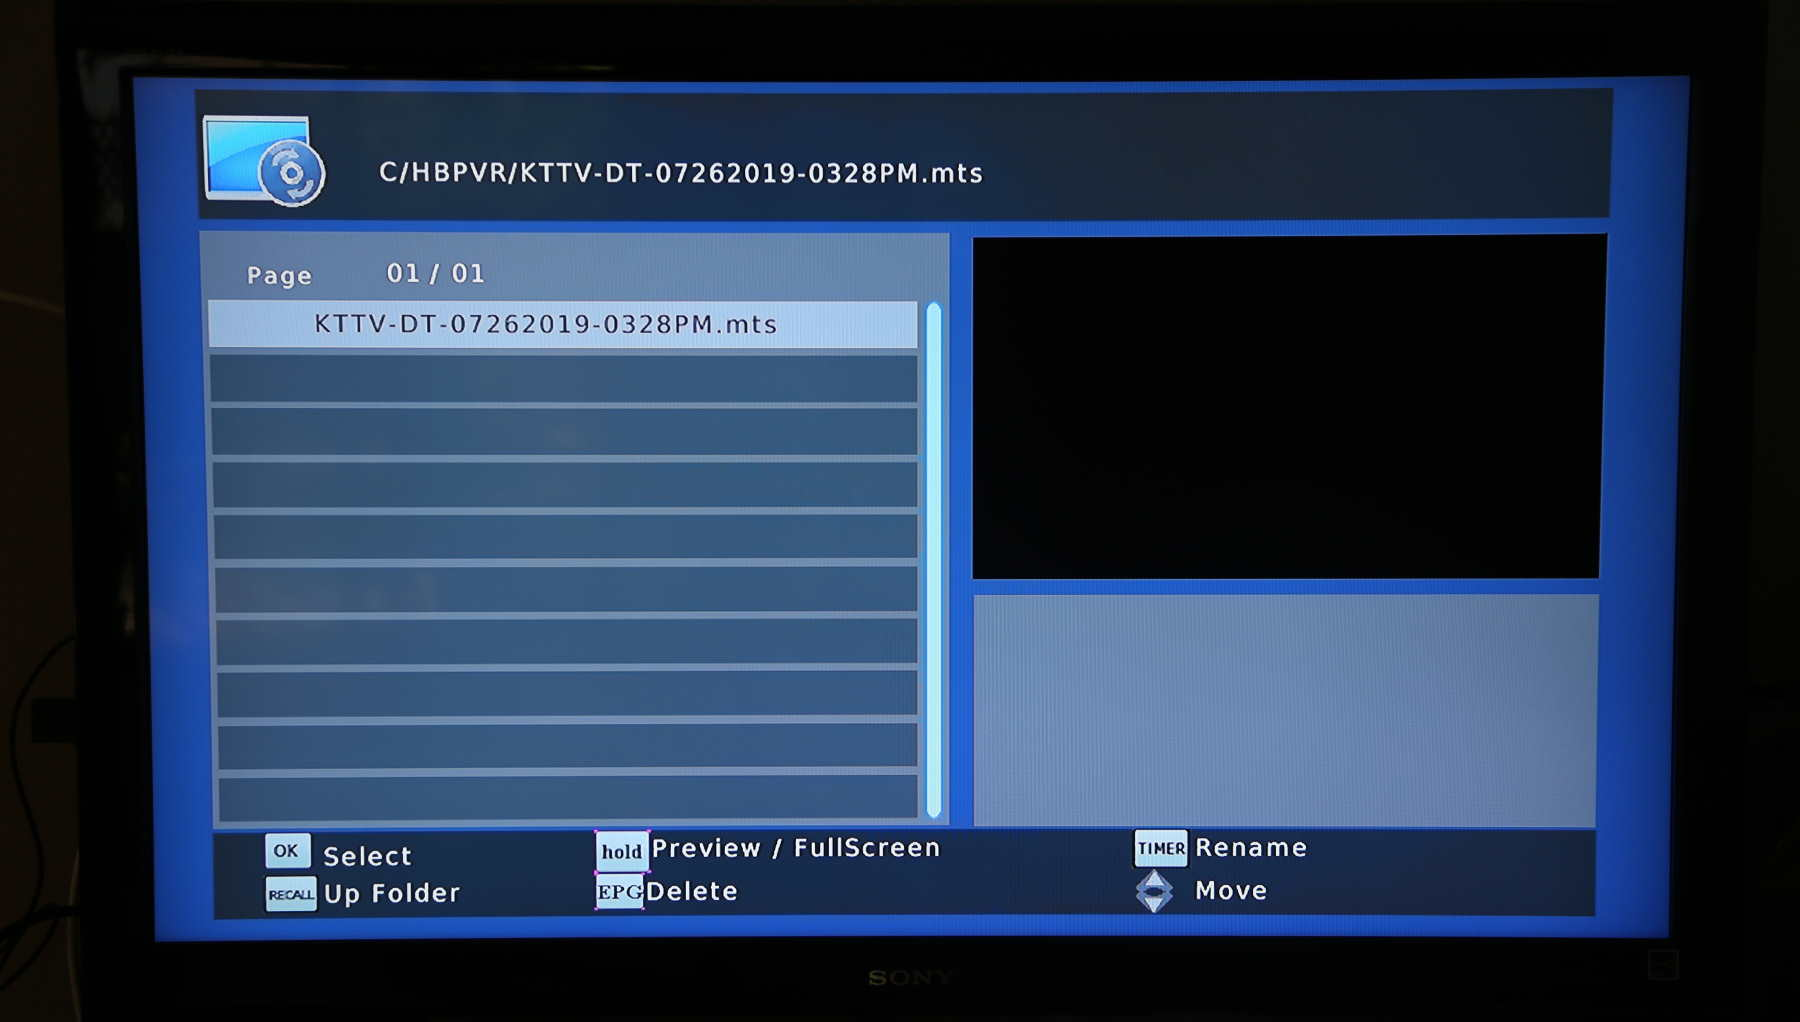 Page showing recording I made with the HOMEWORX converter box